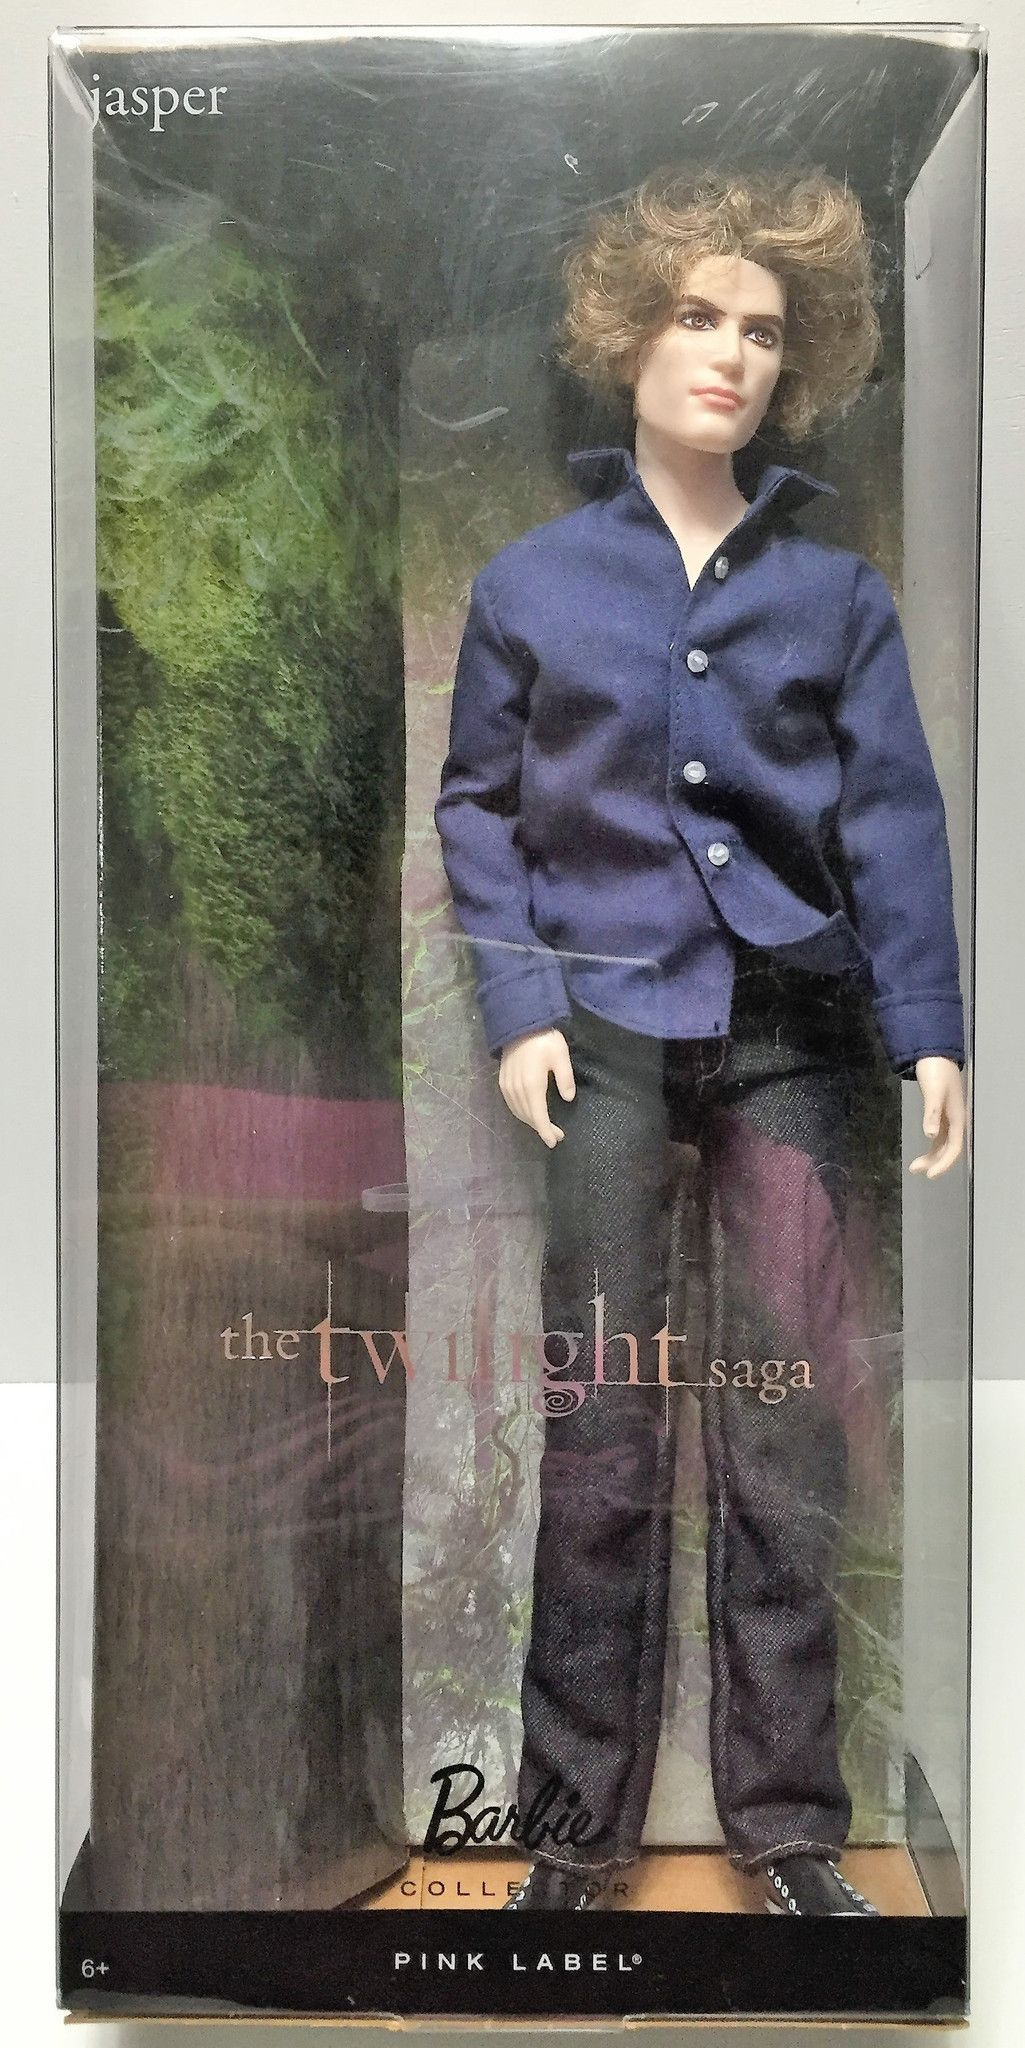 Breaking Dawn Part II Jasper Doll Barbie Mattel Collector The Twilight Saga